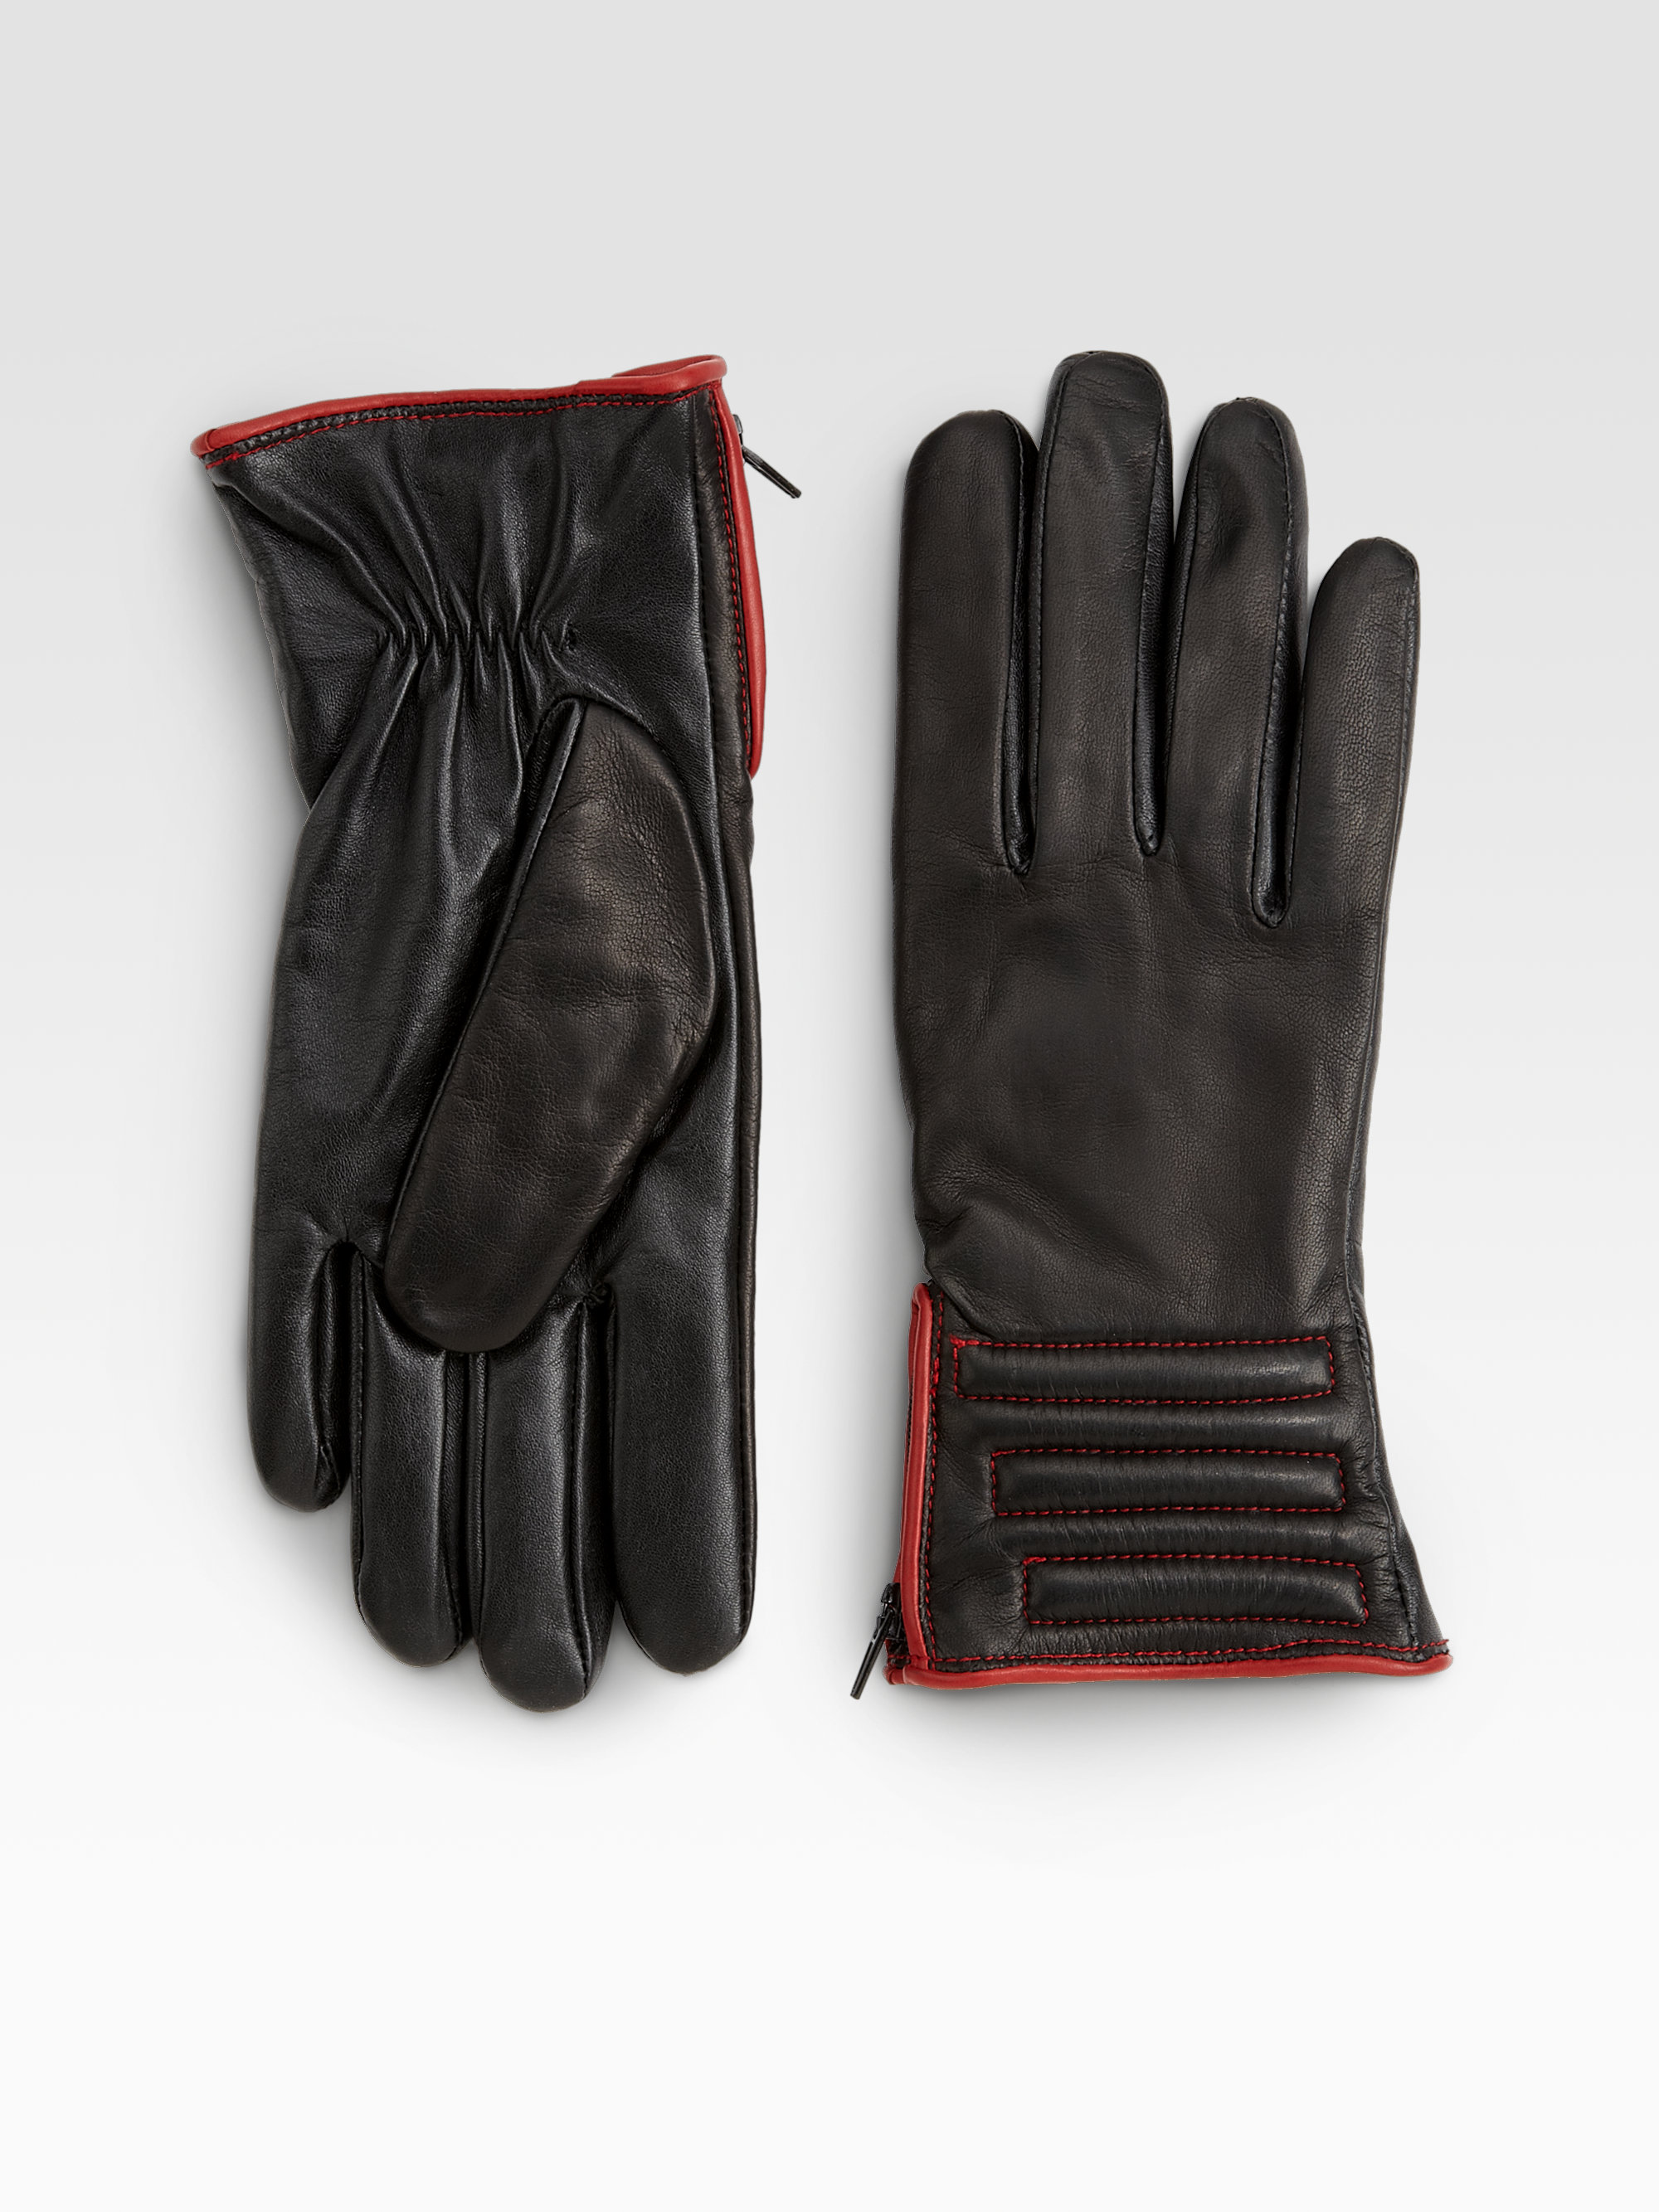 Womens leather touchscreen gloves - Gallery Previously Sold At Saks Fifth Avenue Women S Leather Gloves